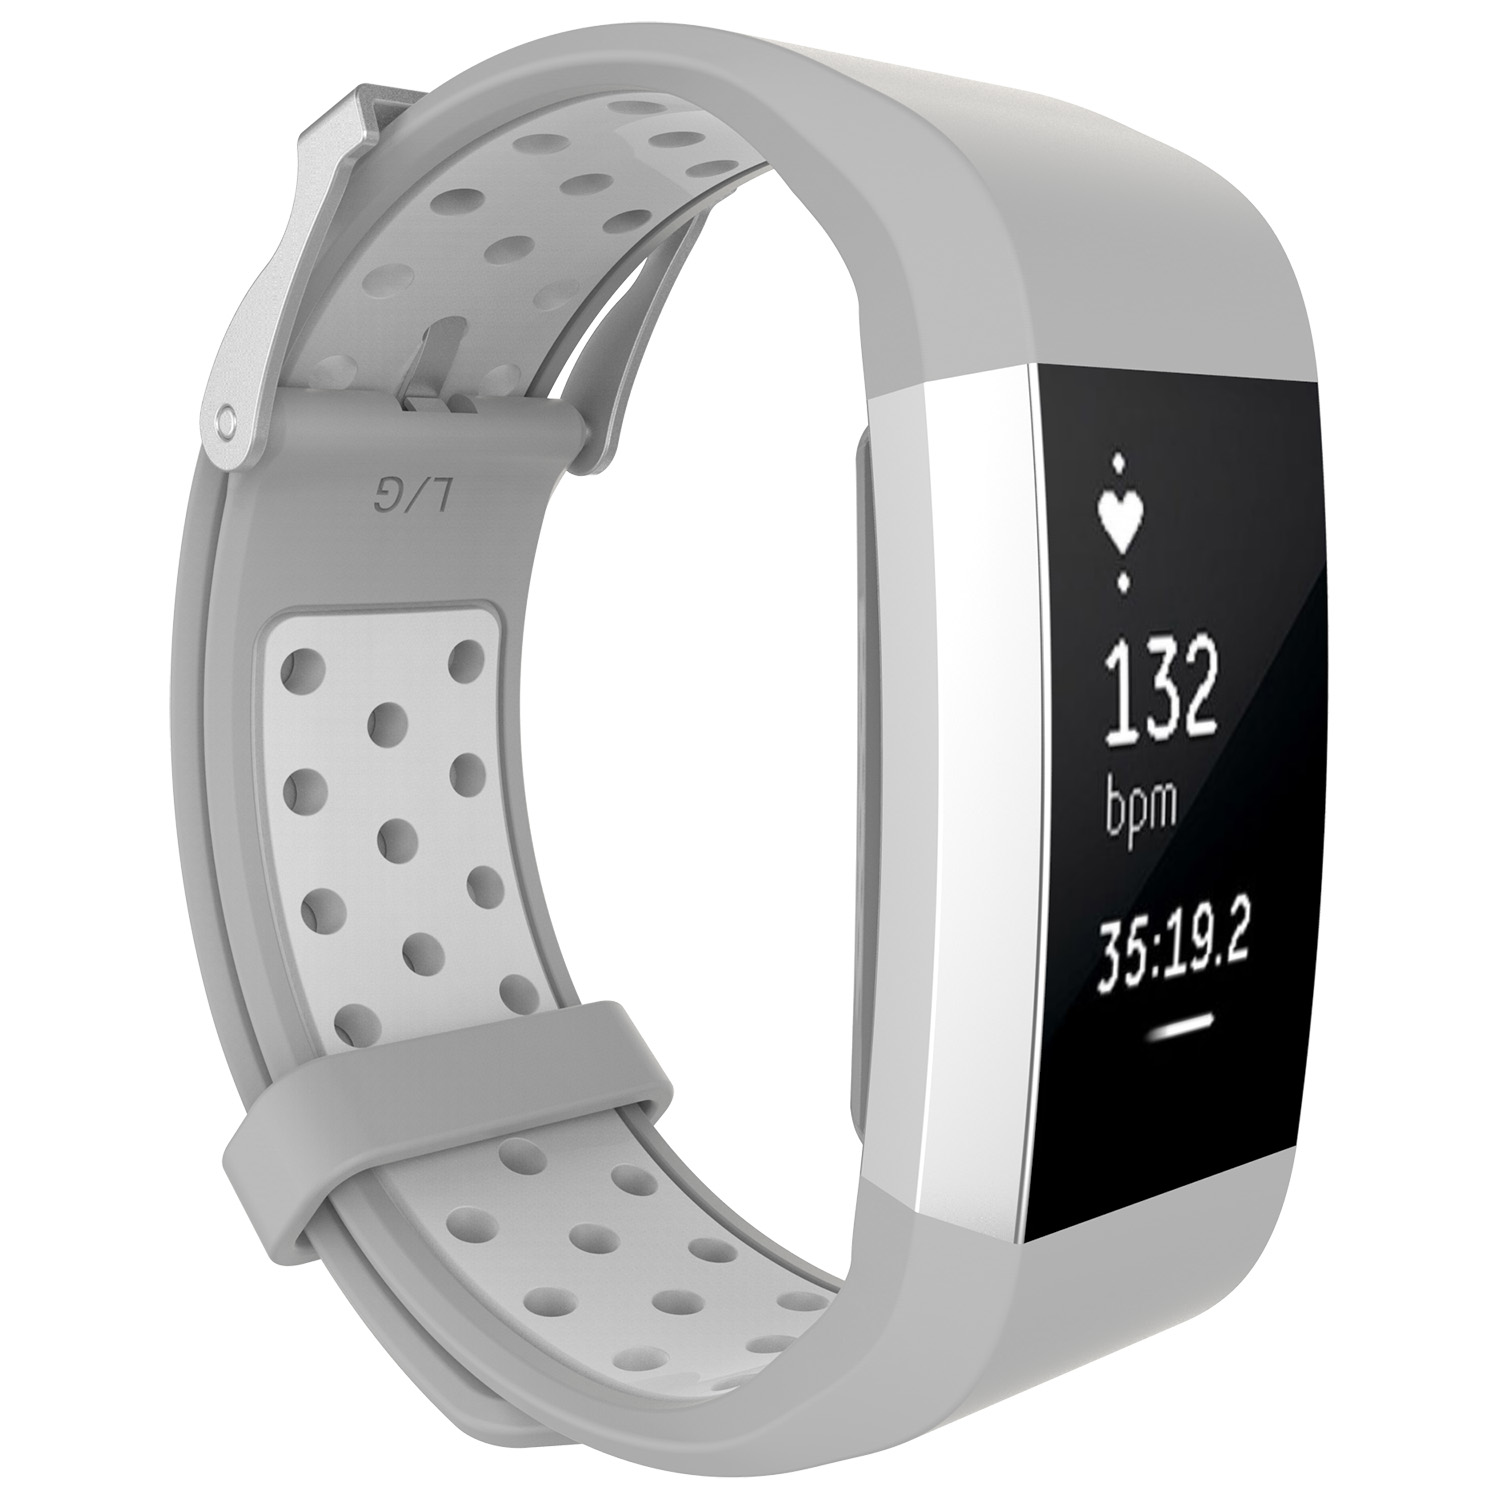 Replacement-Silicone-Wristband-Watch-Strap-Bands-Bracelet-For-Fitbit-Charge-2 thumbnail 90